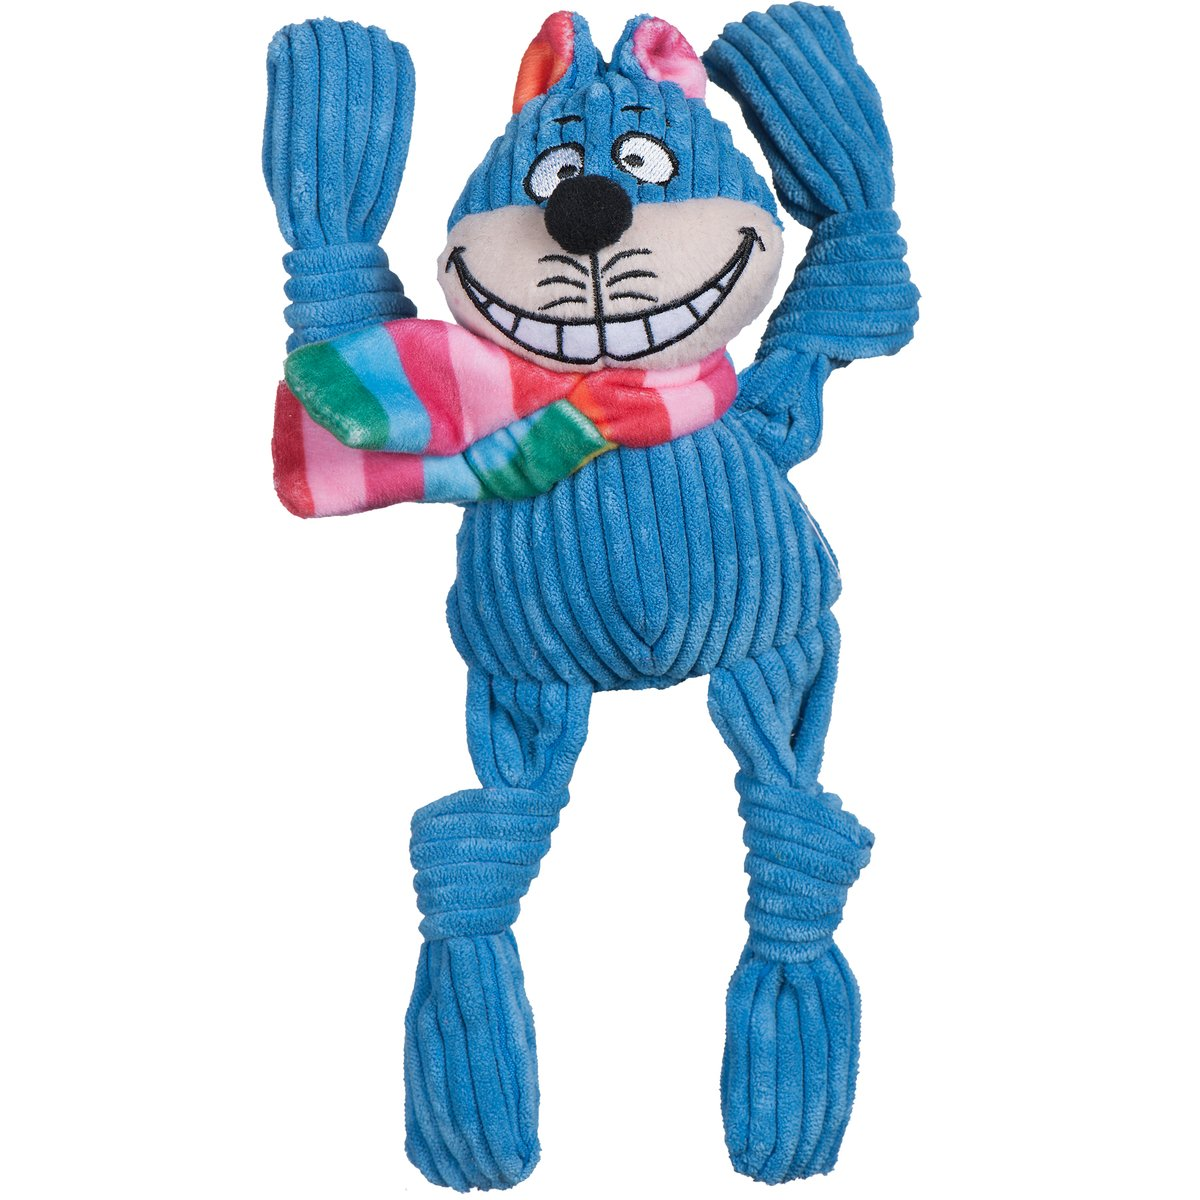 HuggleHounds Rainbow Cheshire Cat Knottie Dog Toy, Small